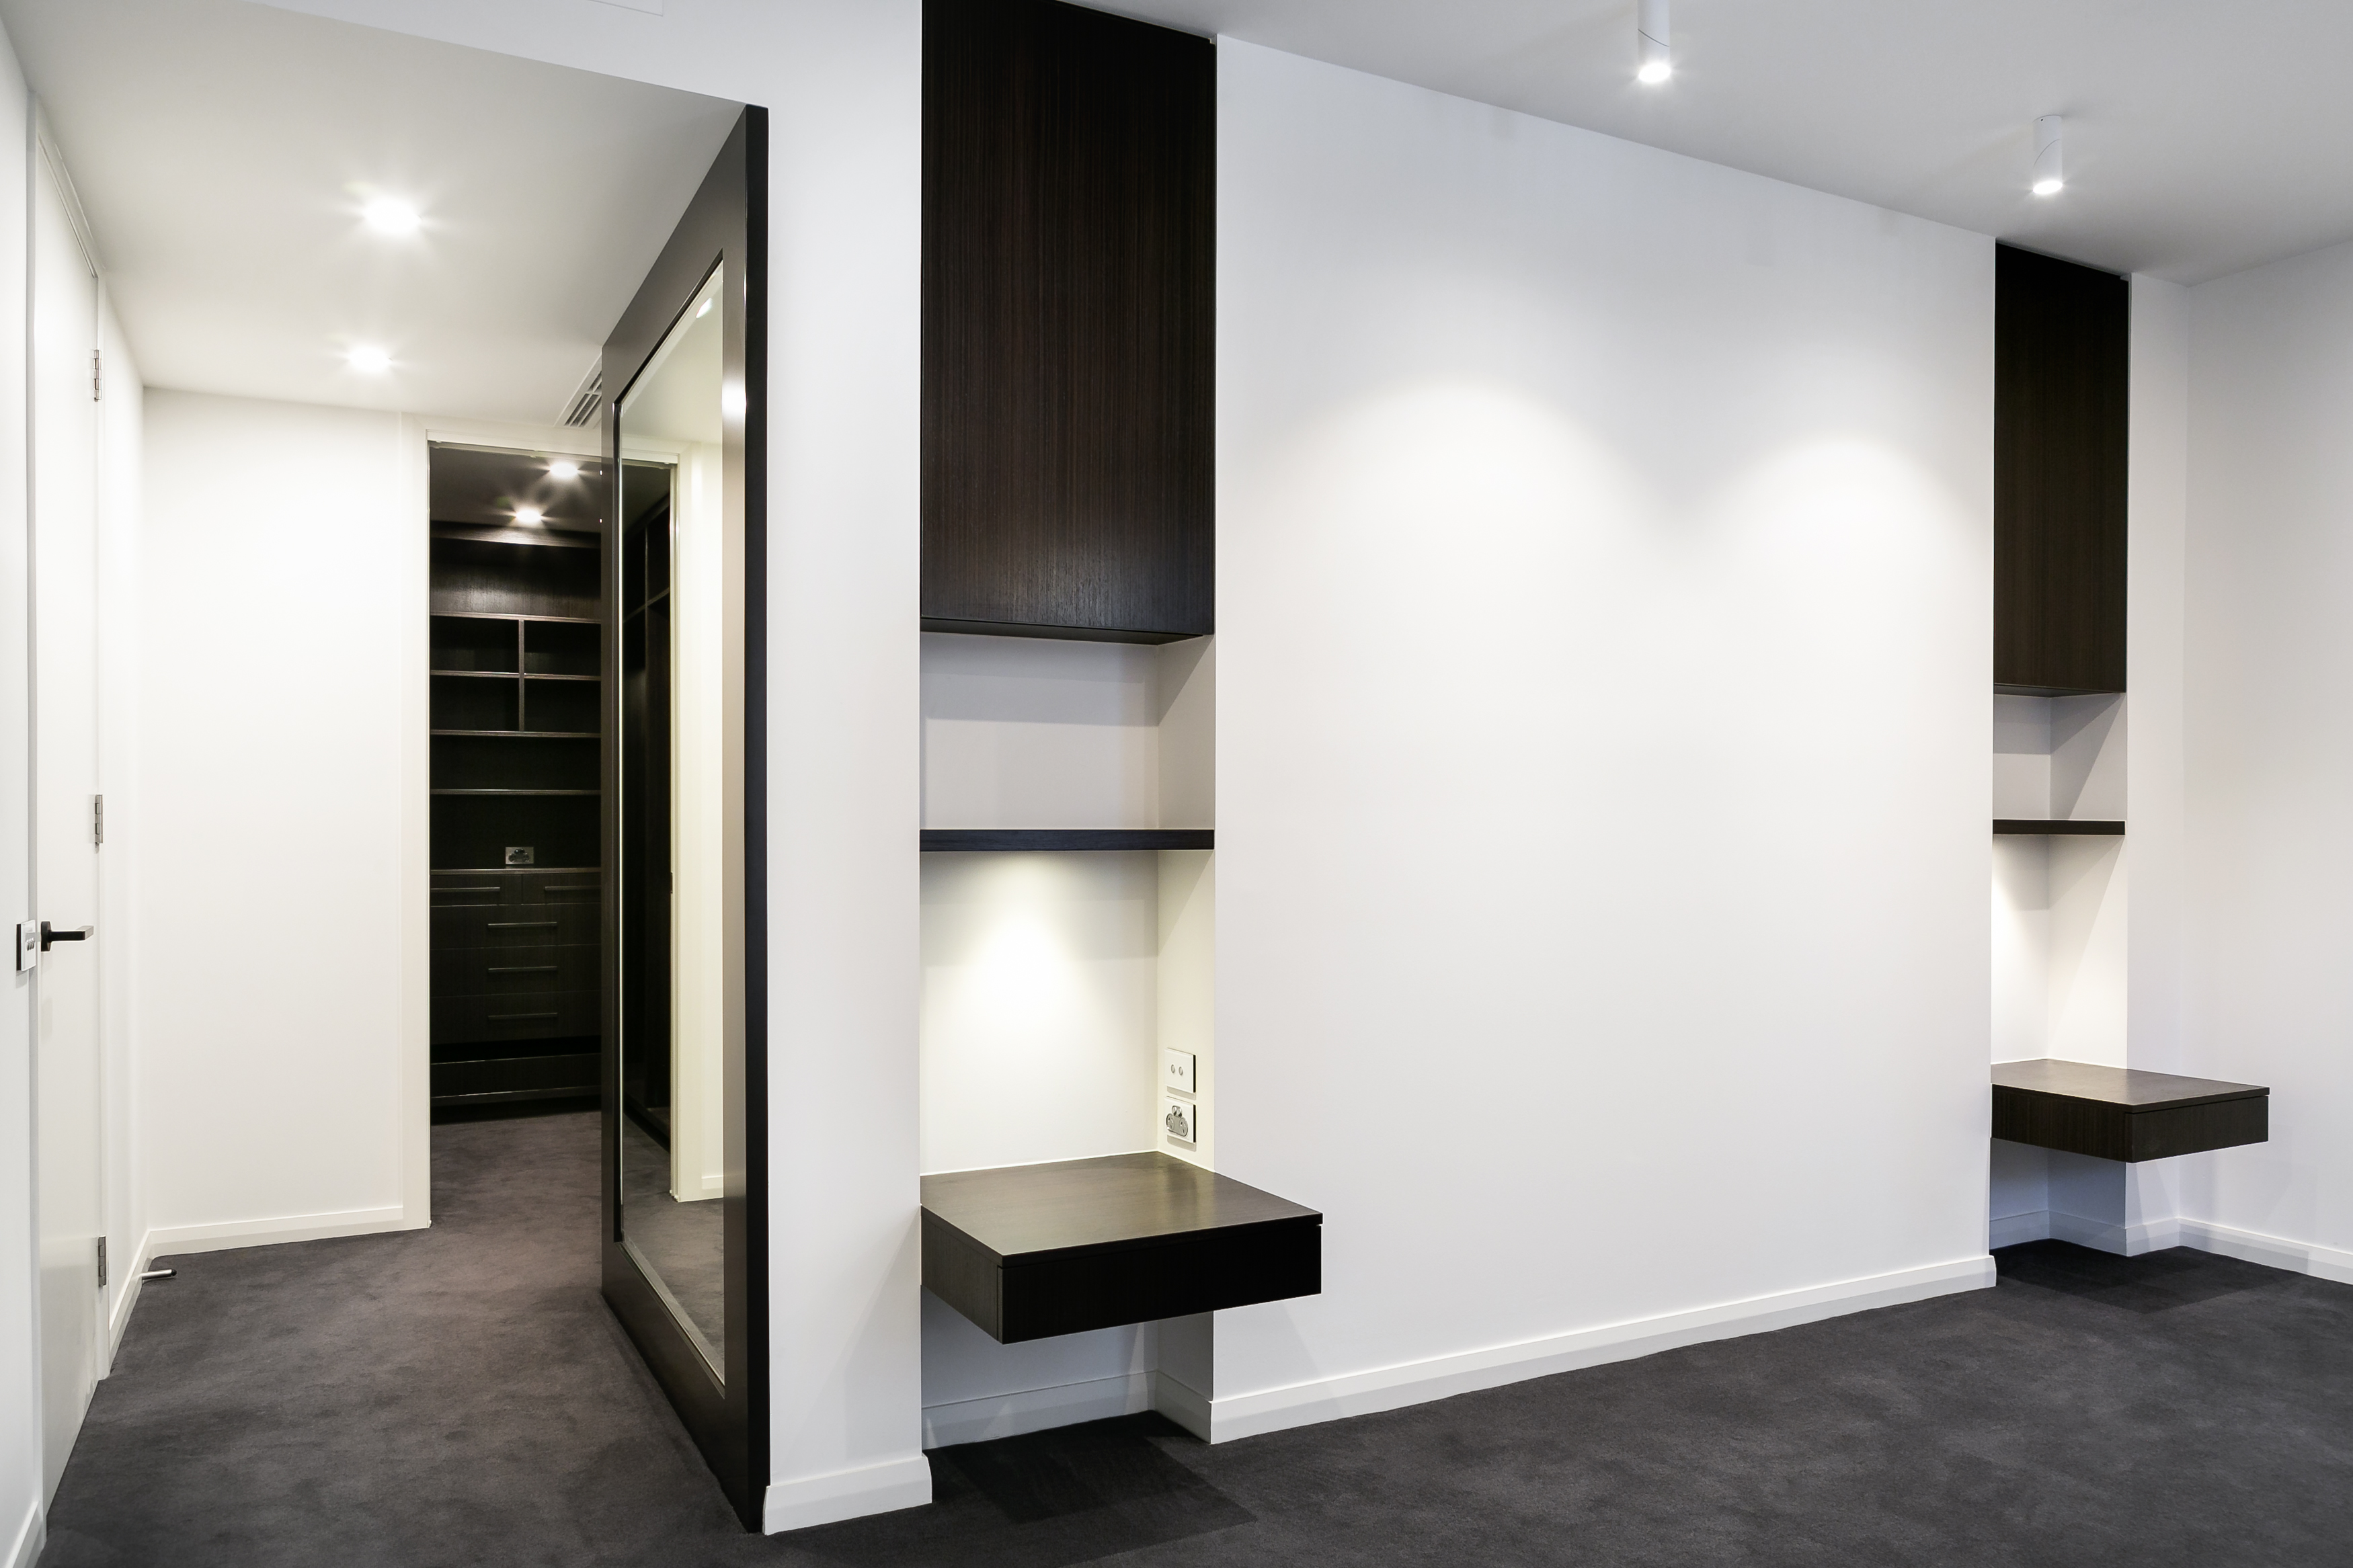 The primary bedroom en suite holds this unique wall detail, with built-in dark wood shelving on white walls, designed to flank the bed. To the left, we see an opening toward the grand walk-in closet.